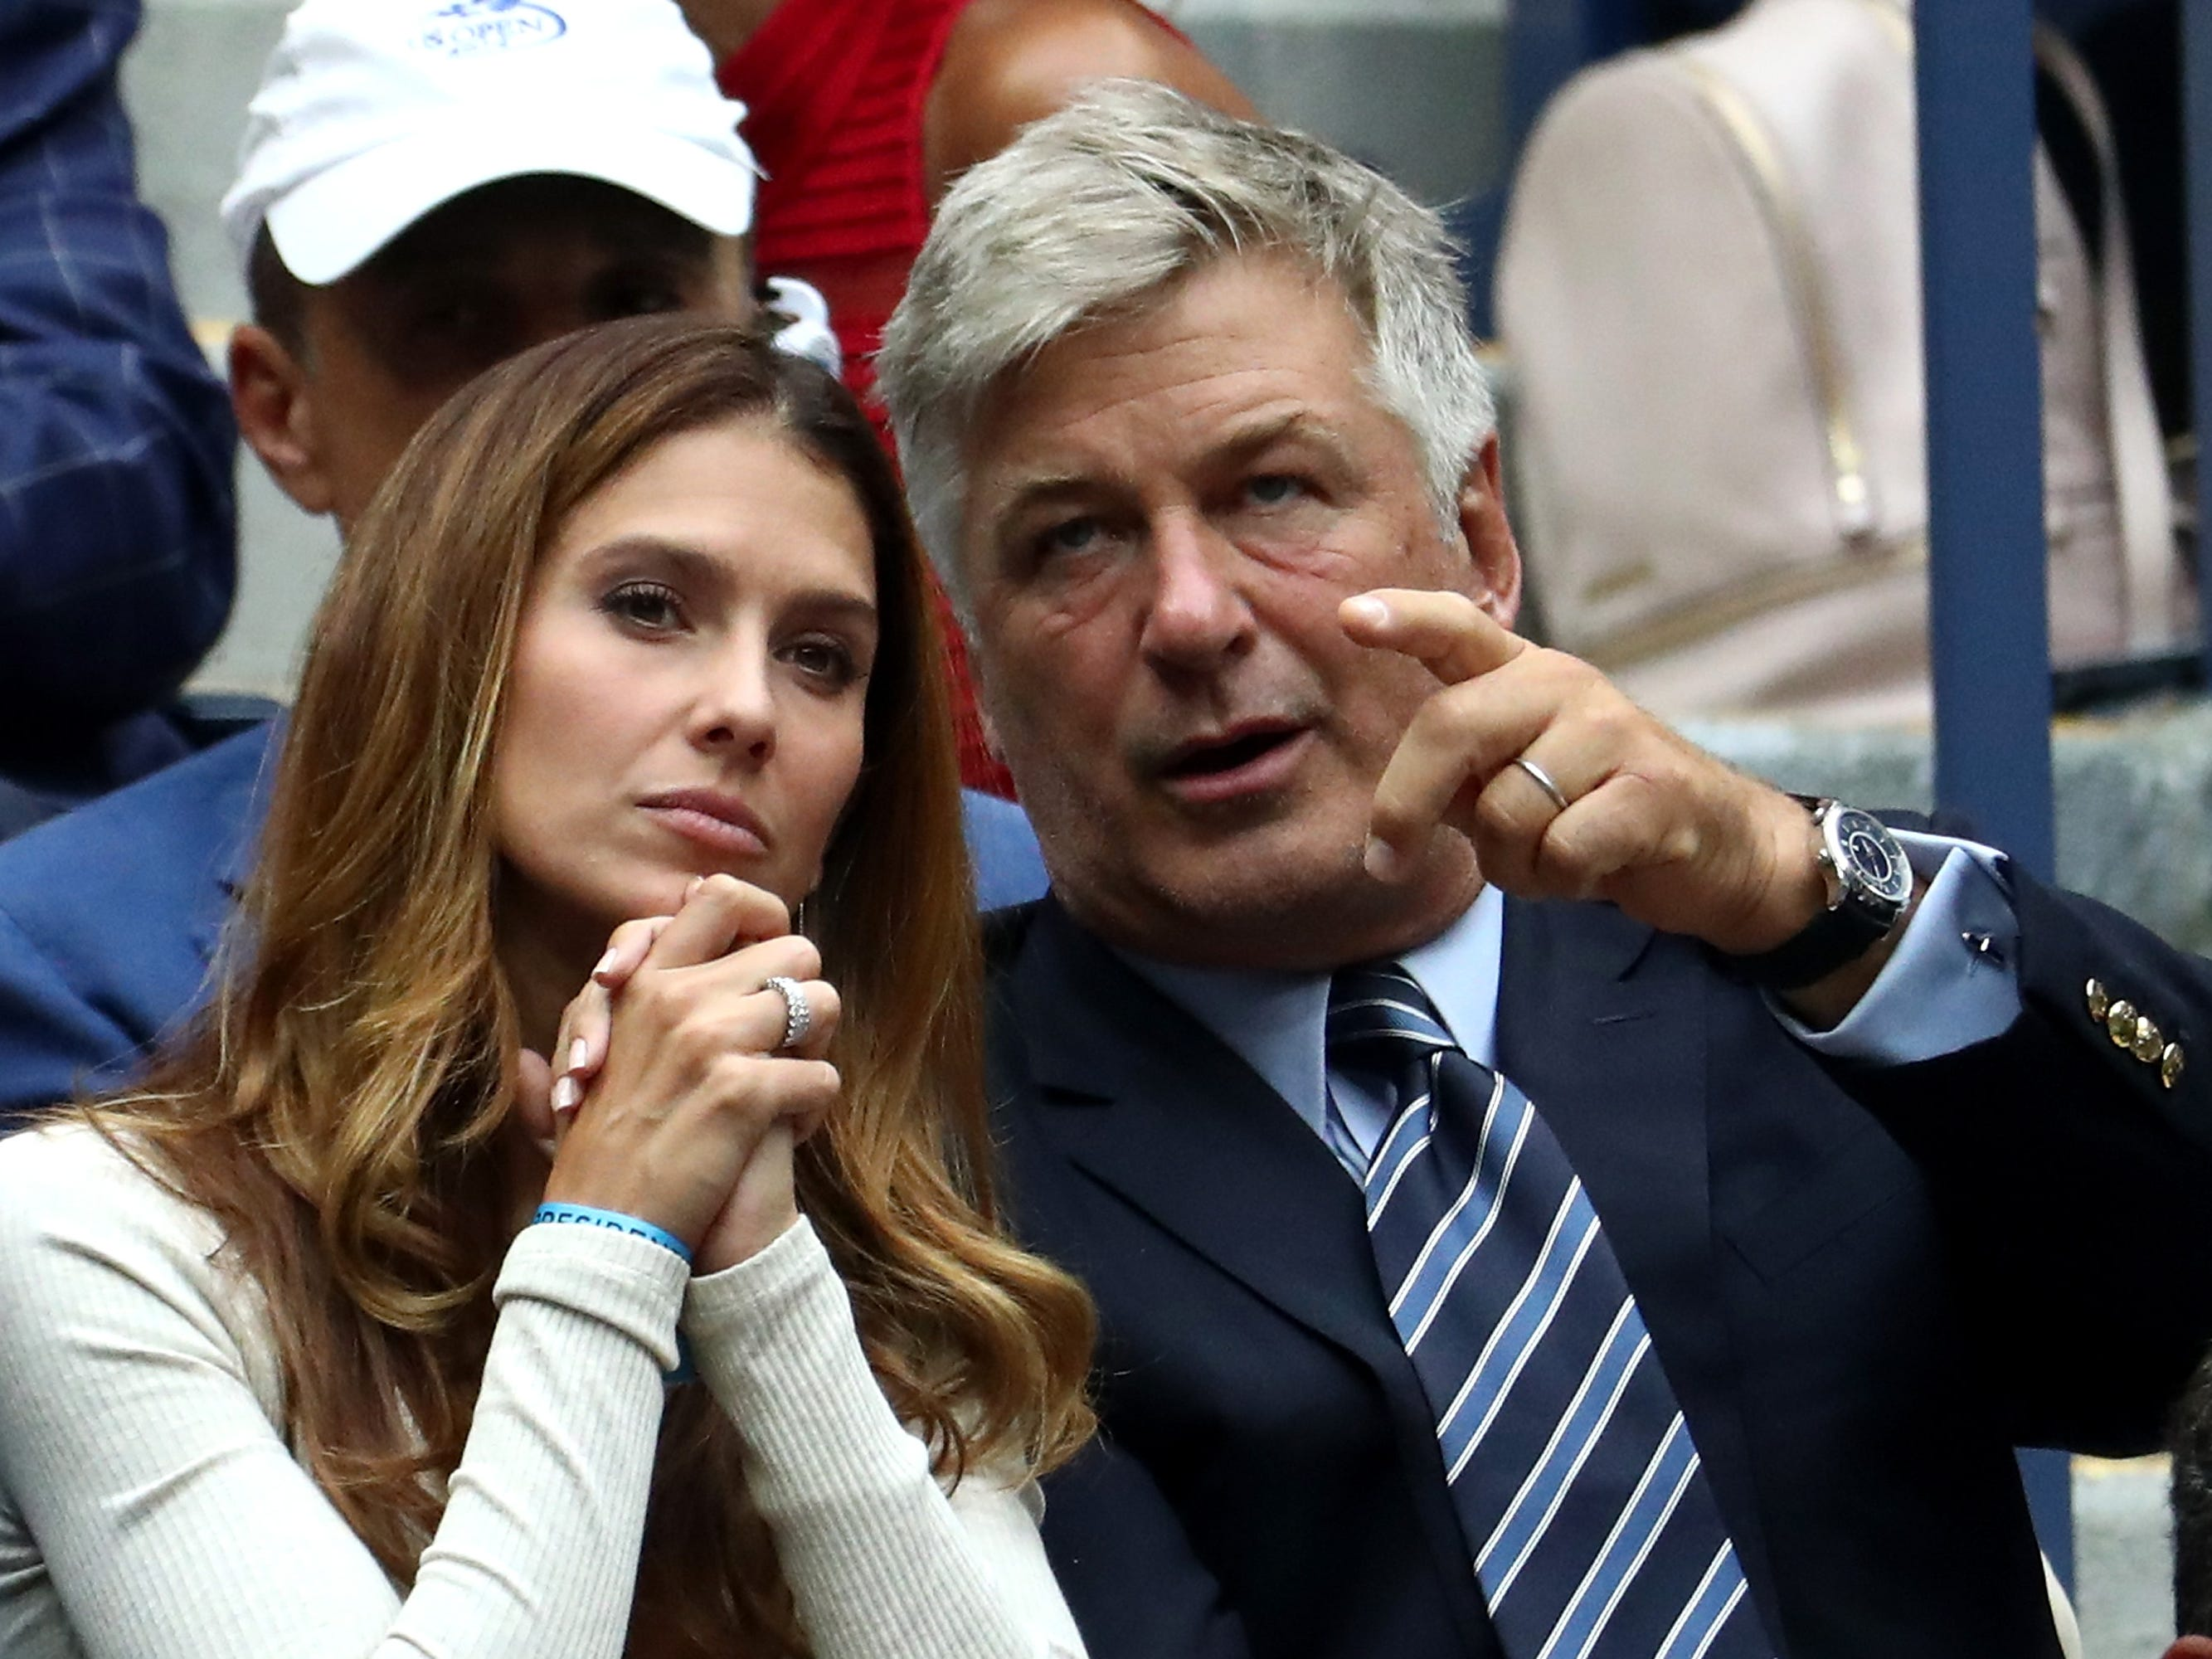 Hilaria and Alec Baldwin take in men's semifinal action at the US Open.